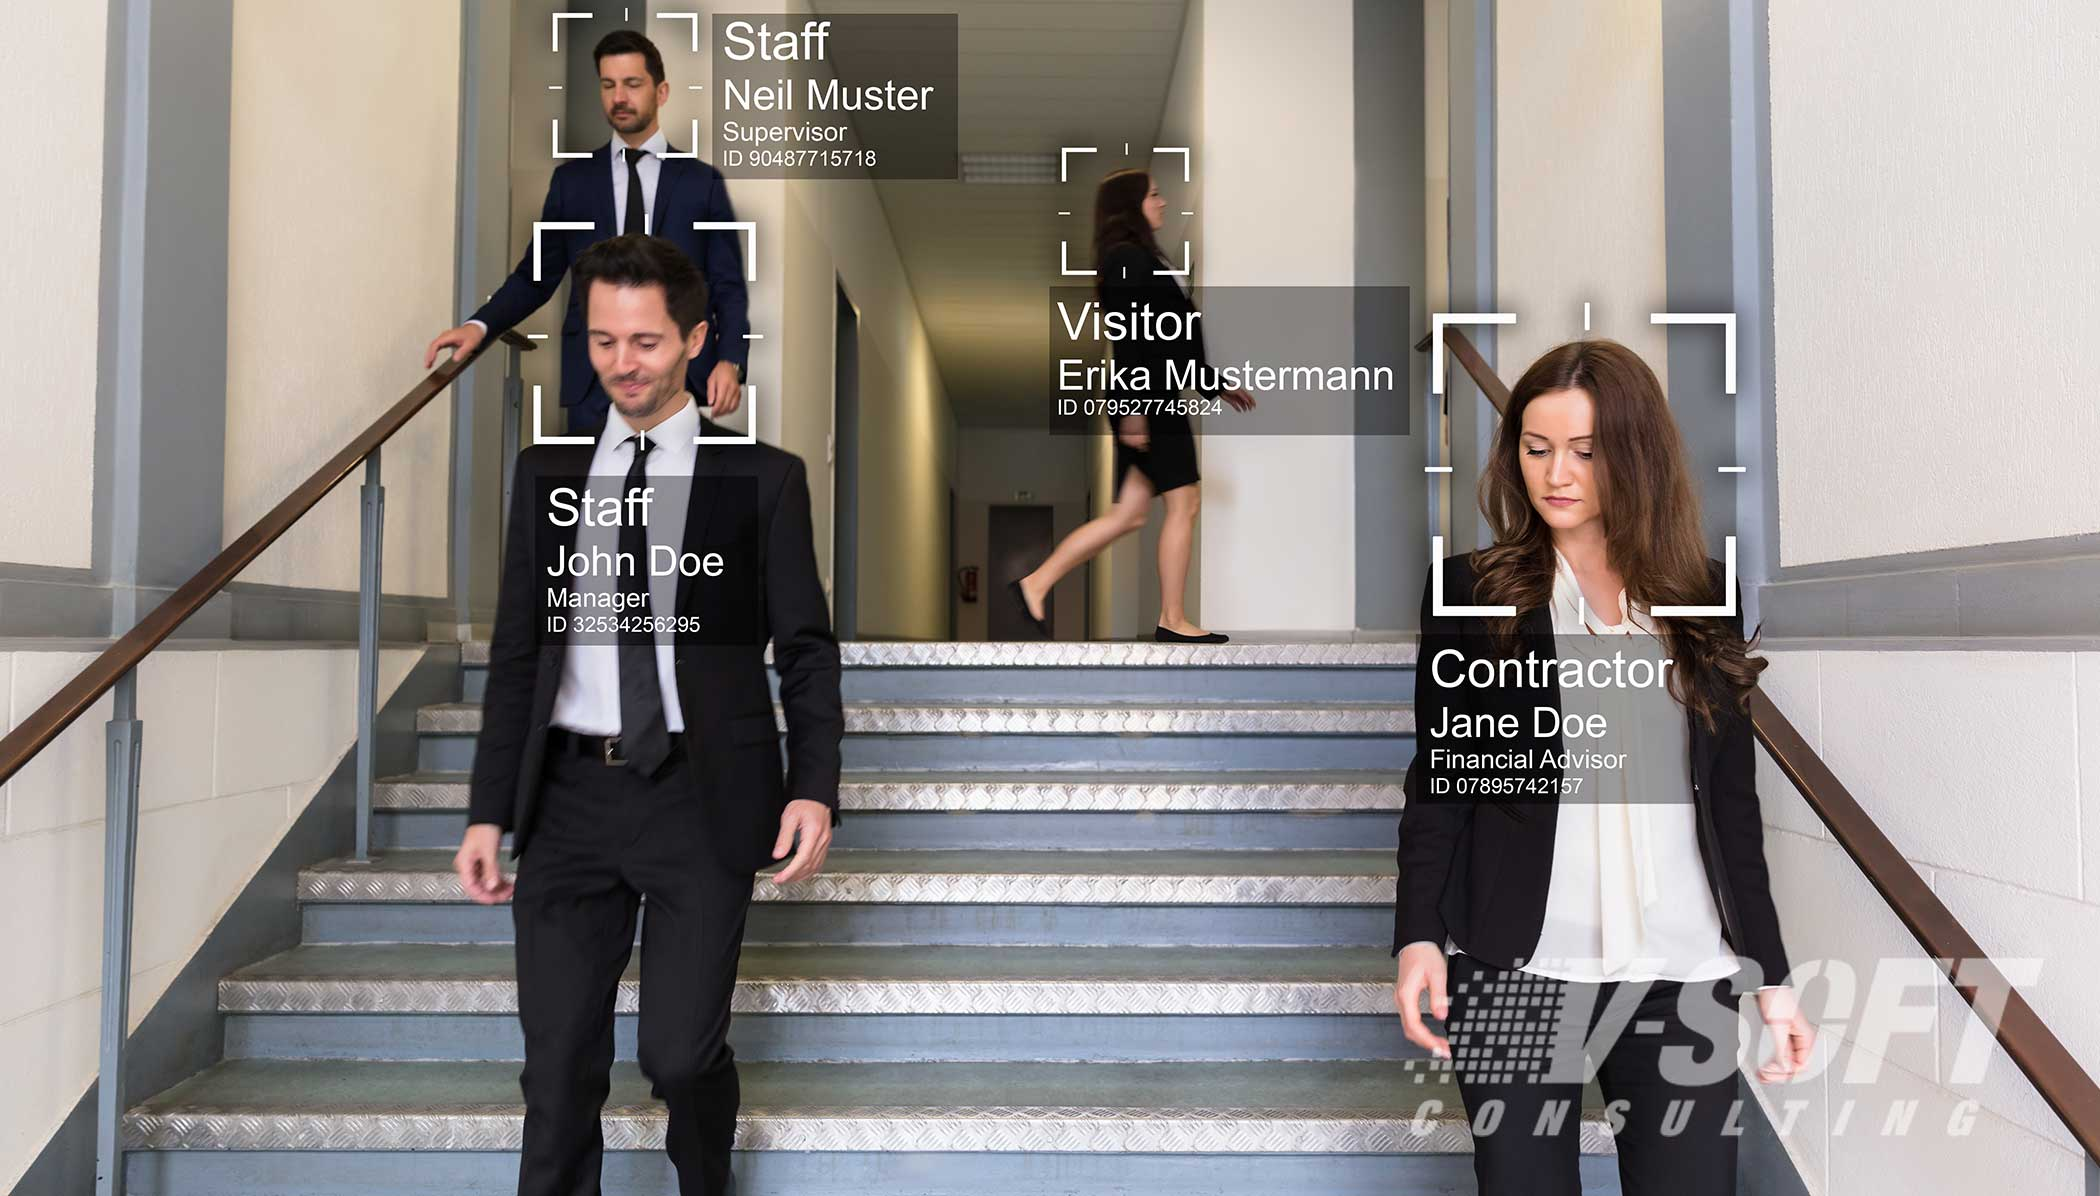 Computer vision application identifying office employees using AI